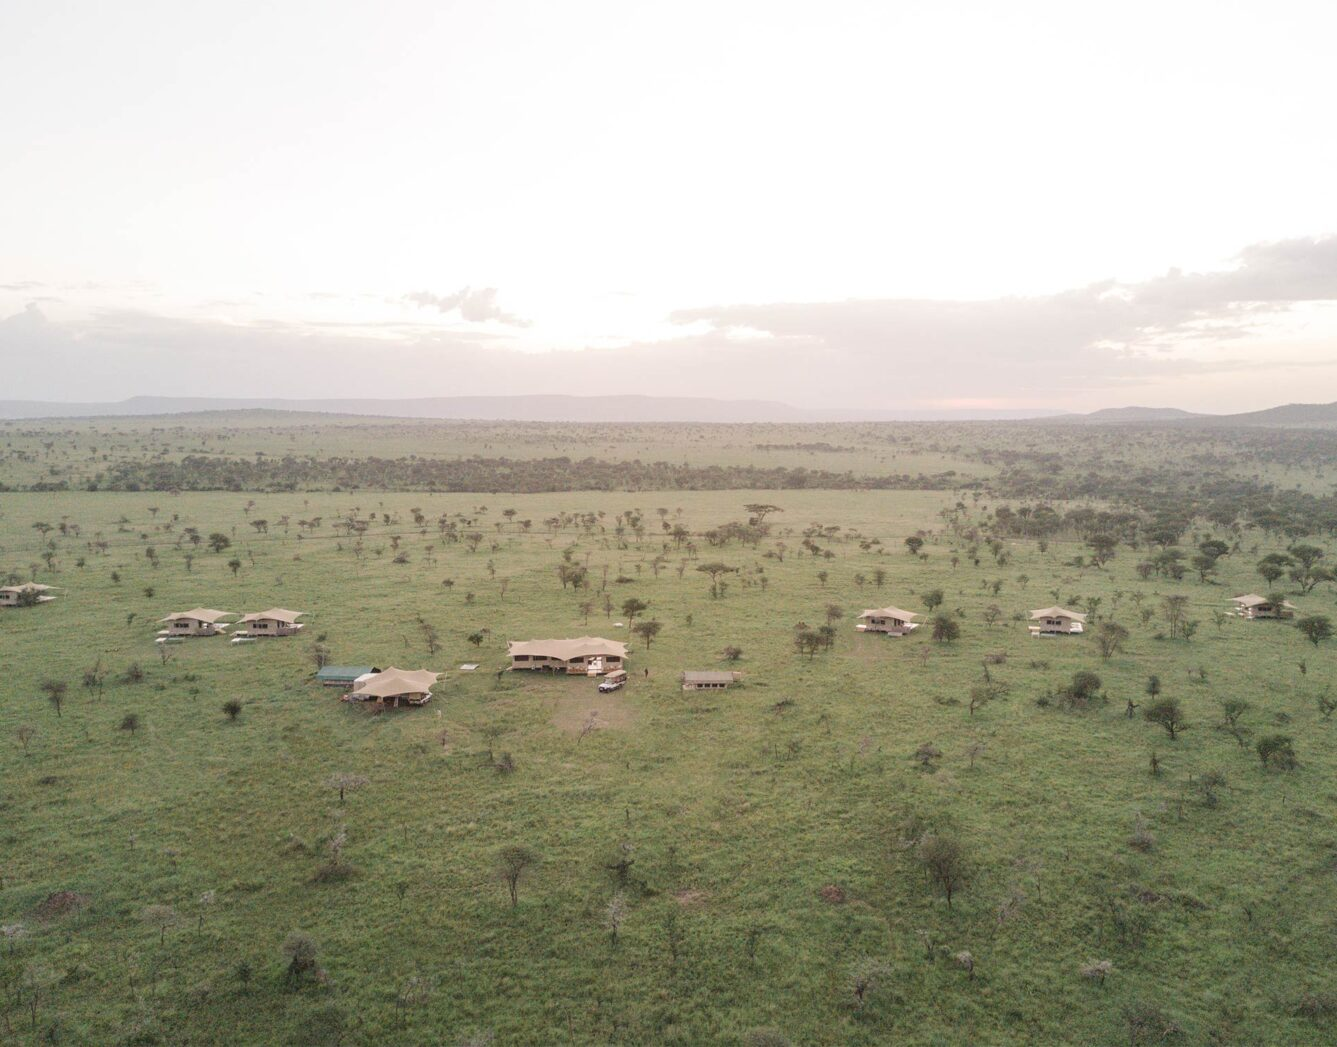 An arial view of the Roving Bushtops camp